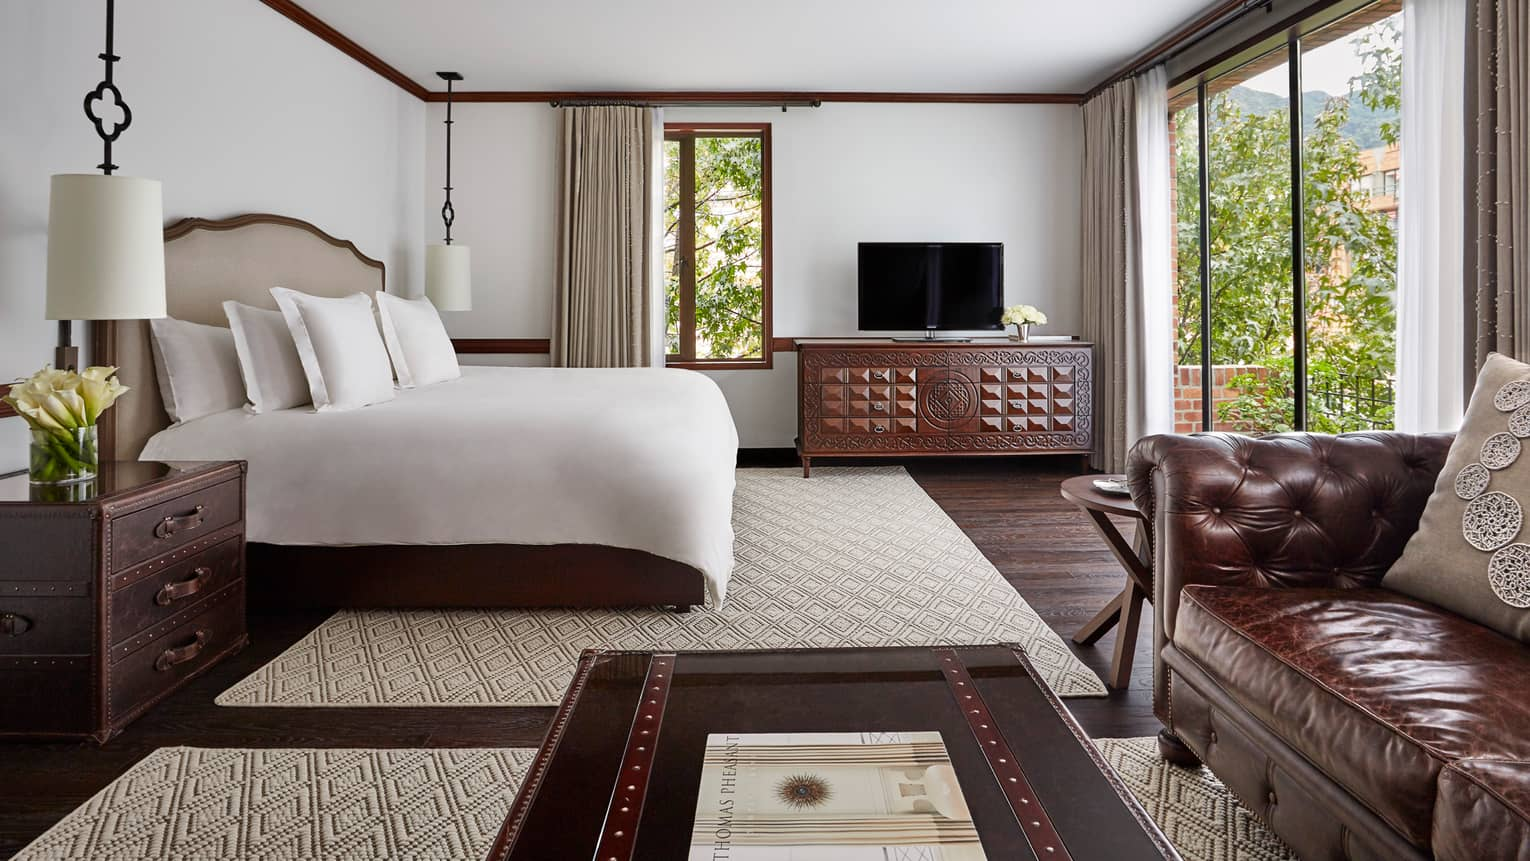 Executive Suite with bed with white linens, wood trunk-style coffee table and nightstand, large glass patio door